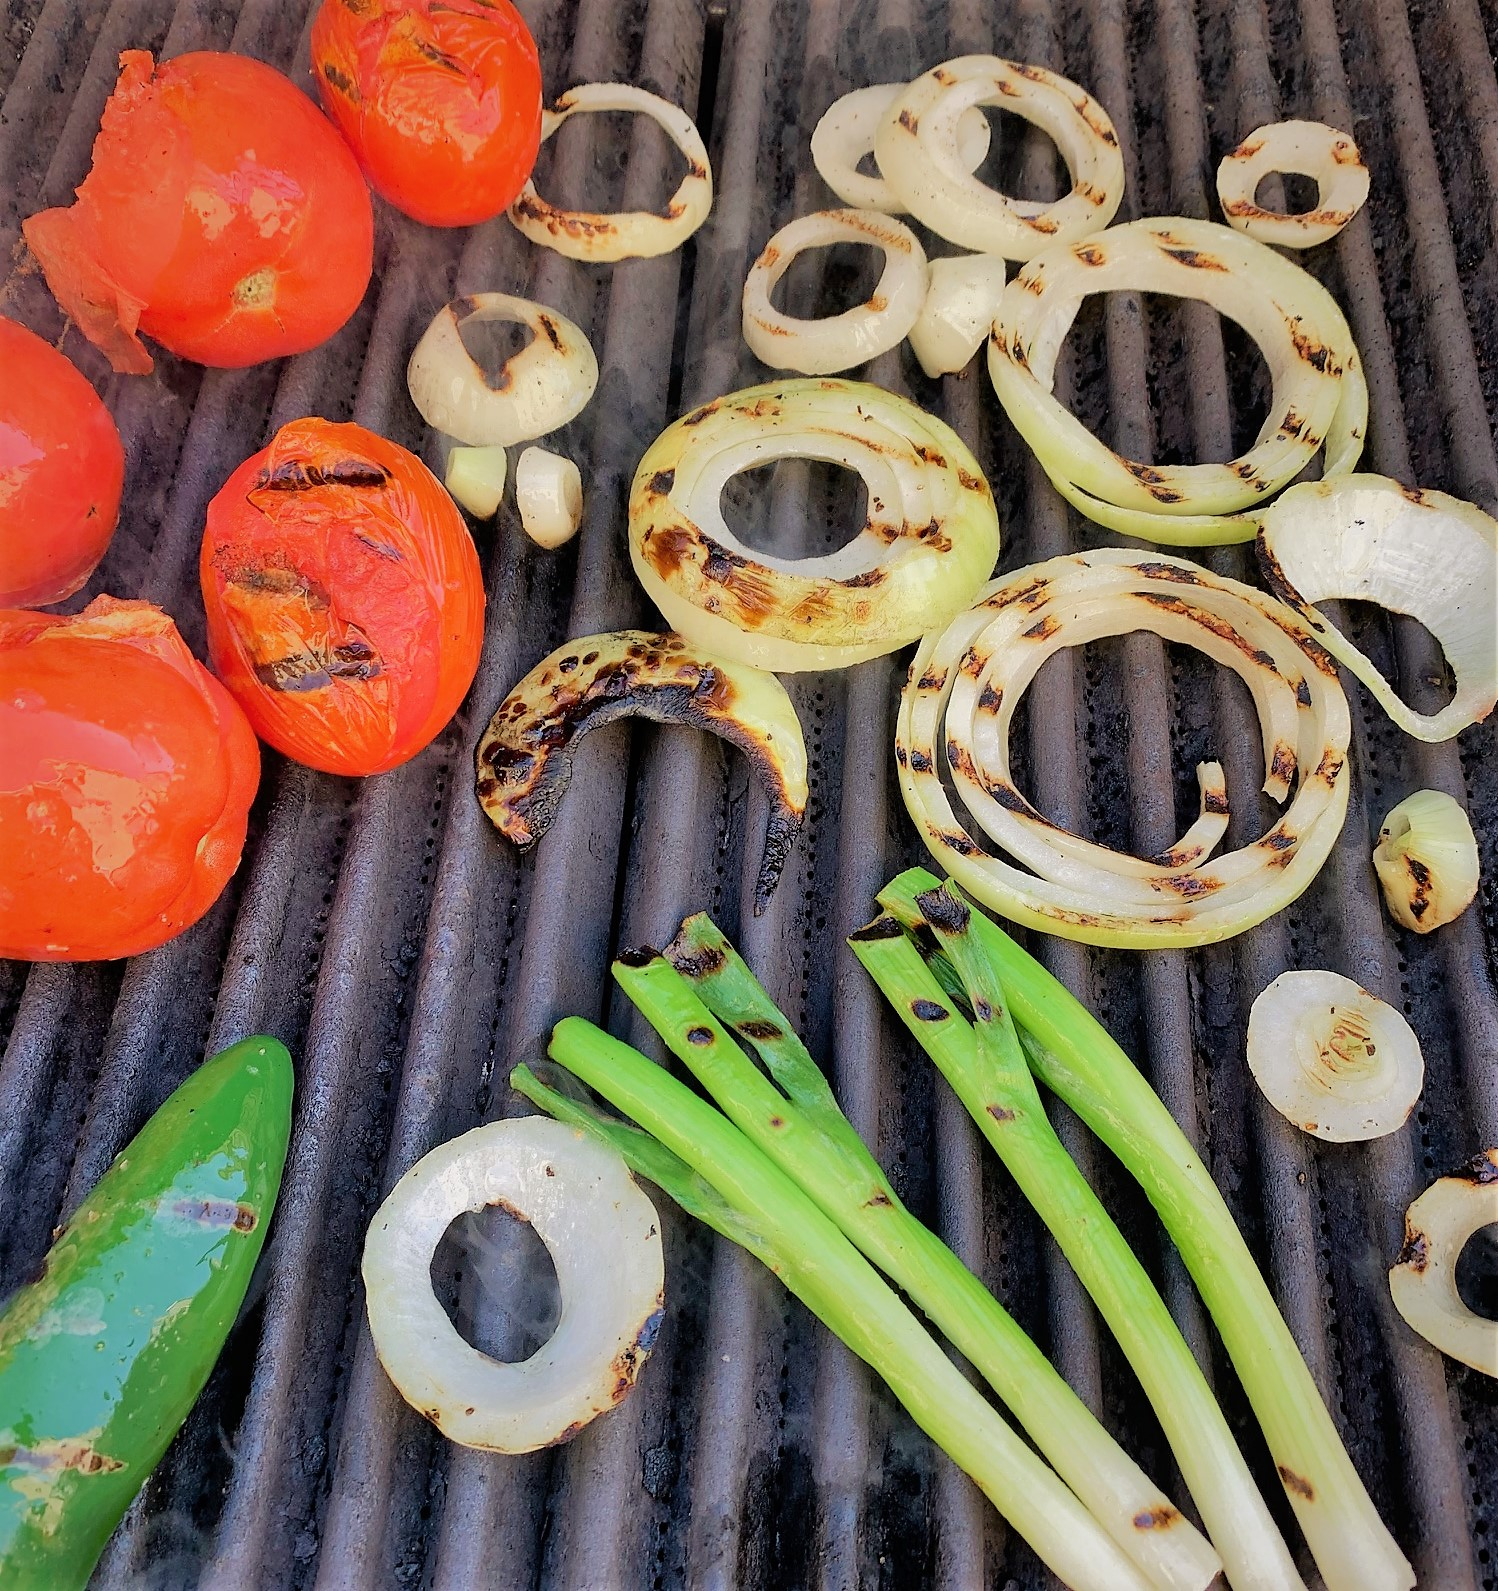 Grilling the vegetables for our Fire Roasted Tomato Salsa